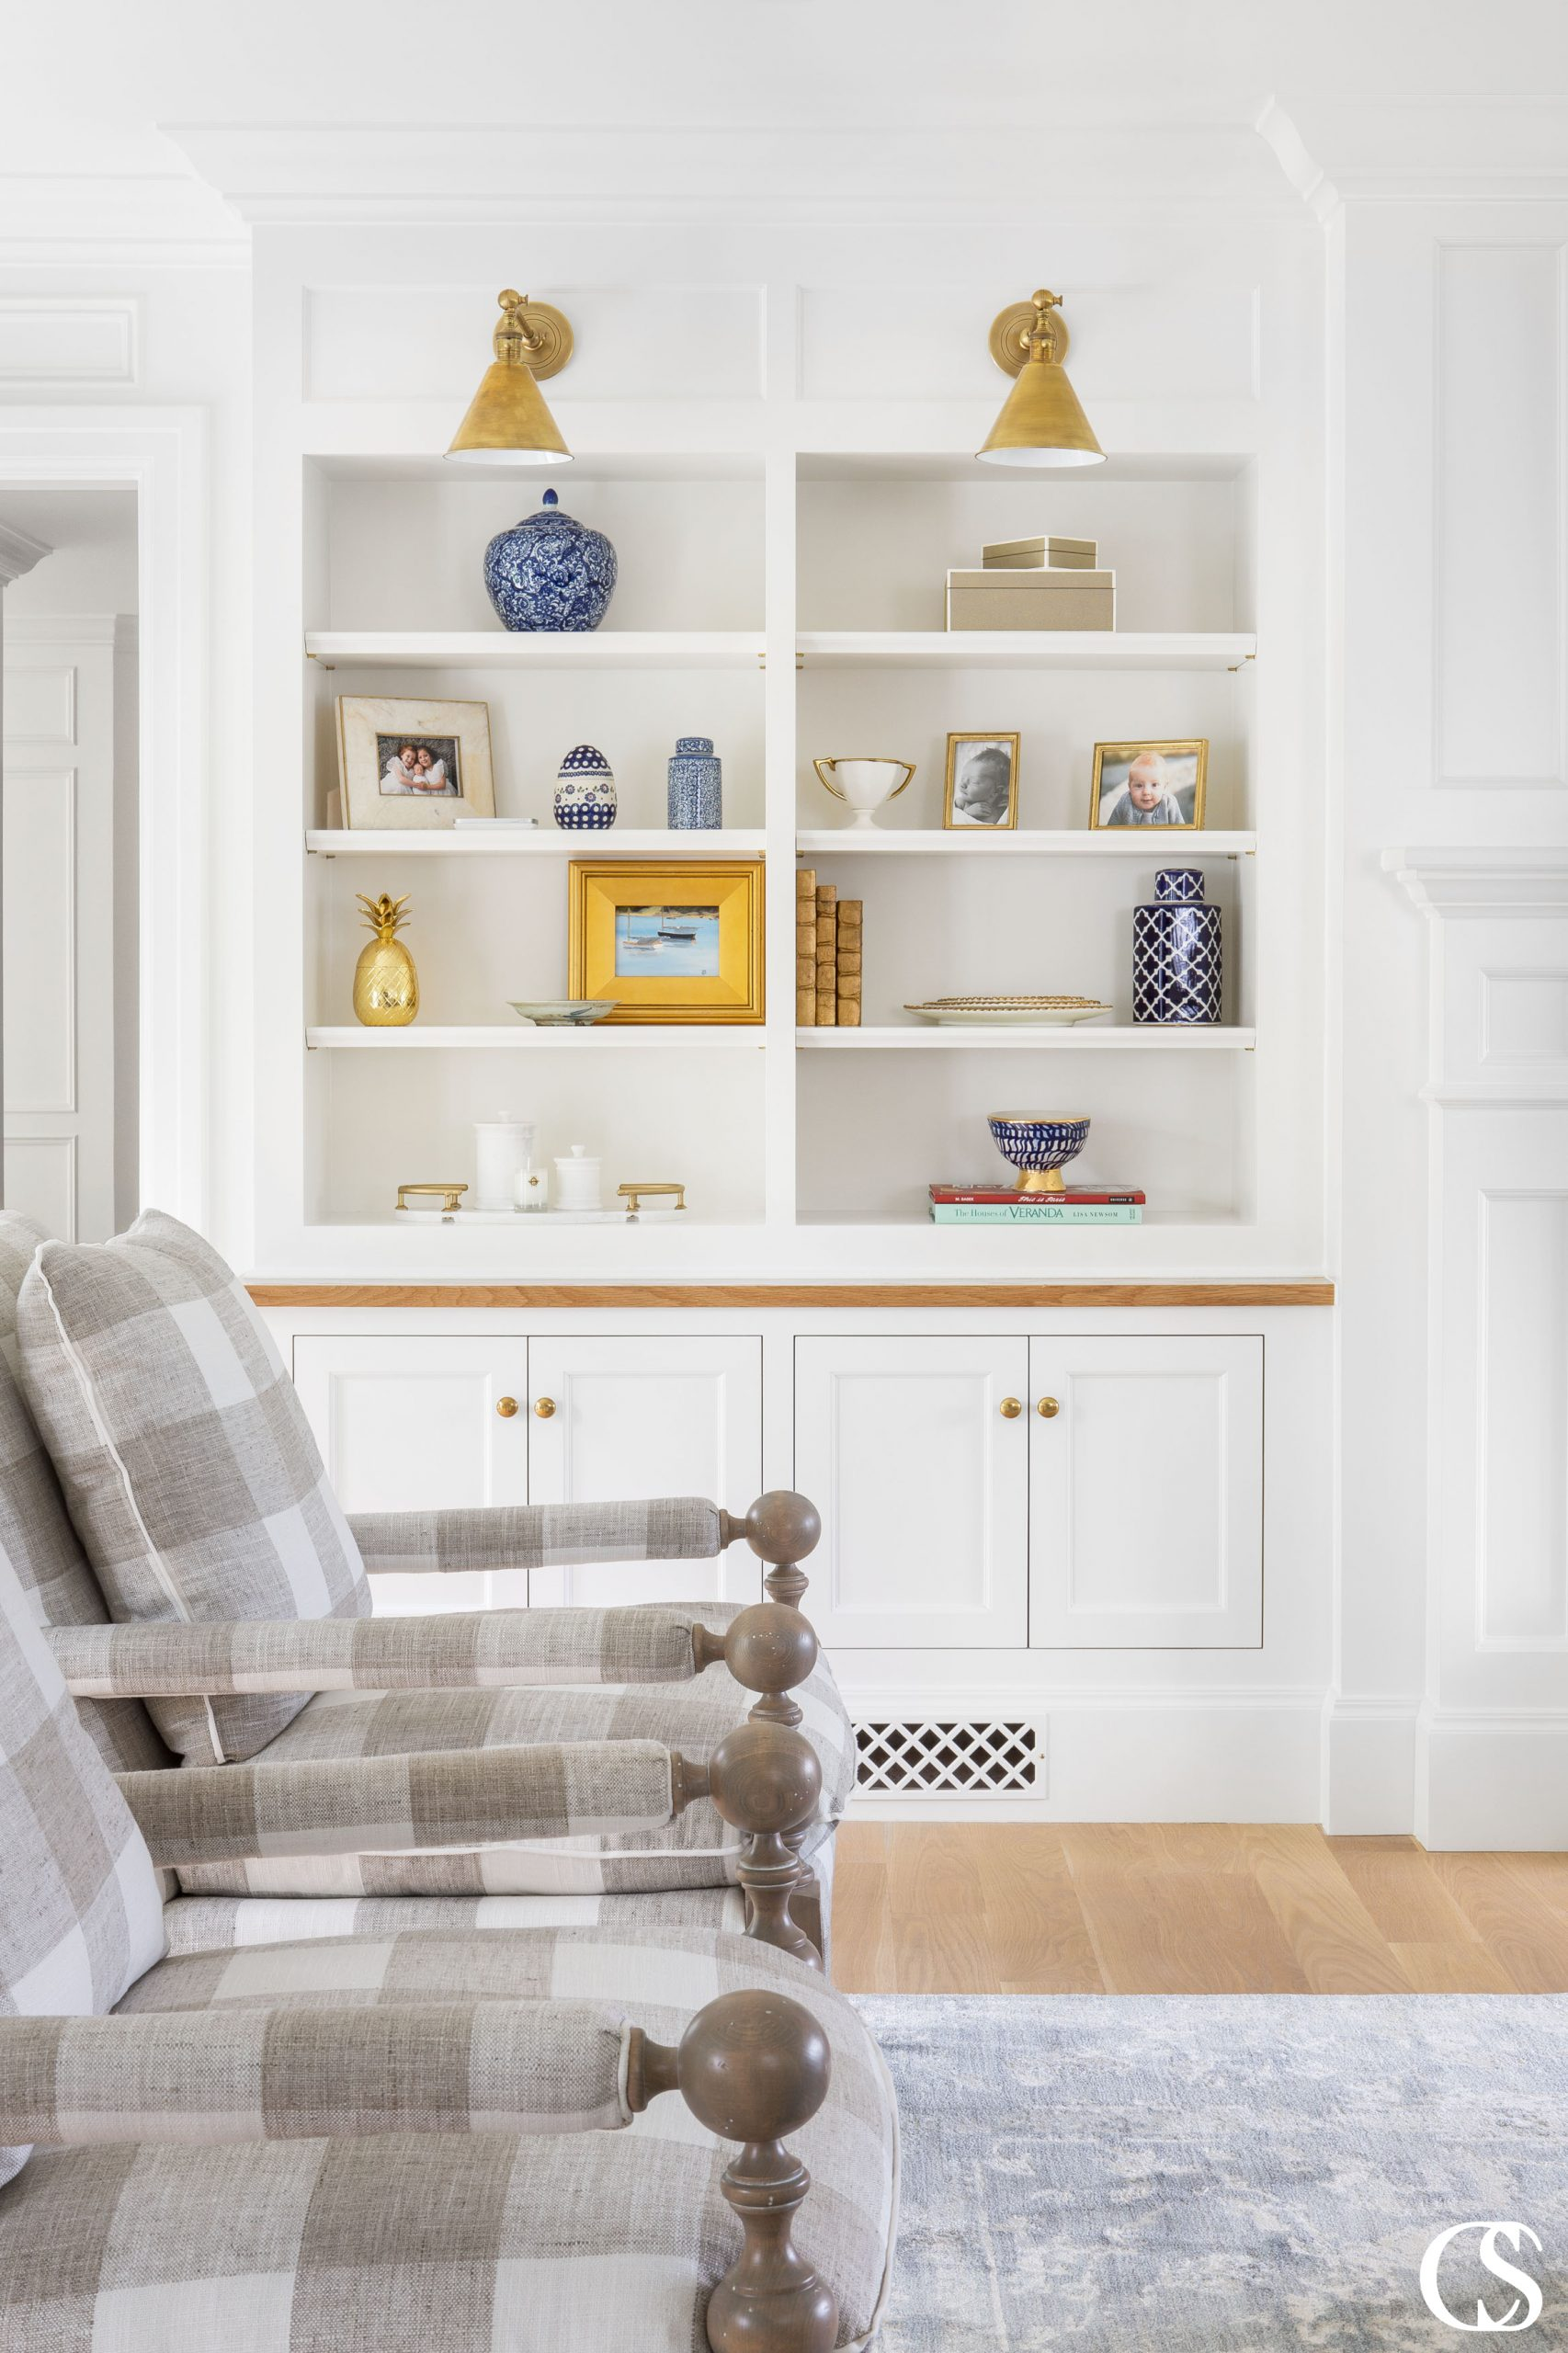 Custom cabinets for the home ensure your family has enough space for YOUR needs—like displaying beloved photos and memorabilia above hidden storage for blankets and games.